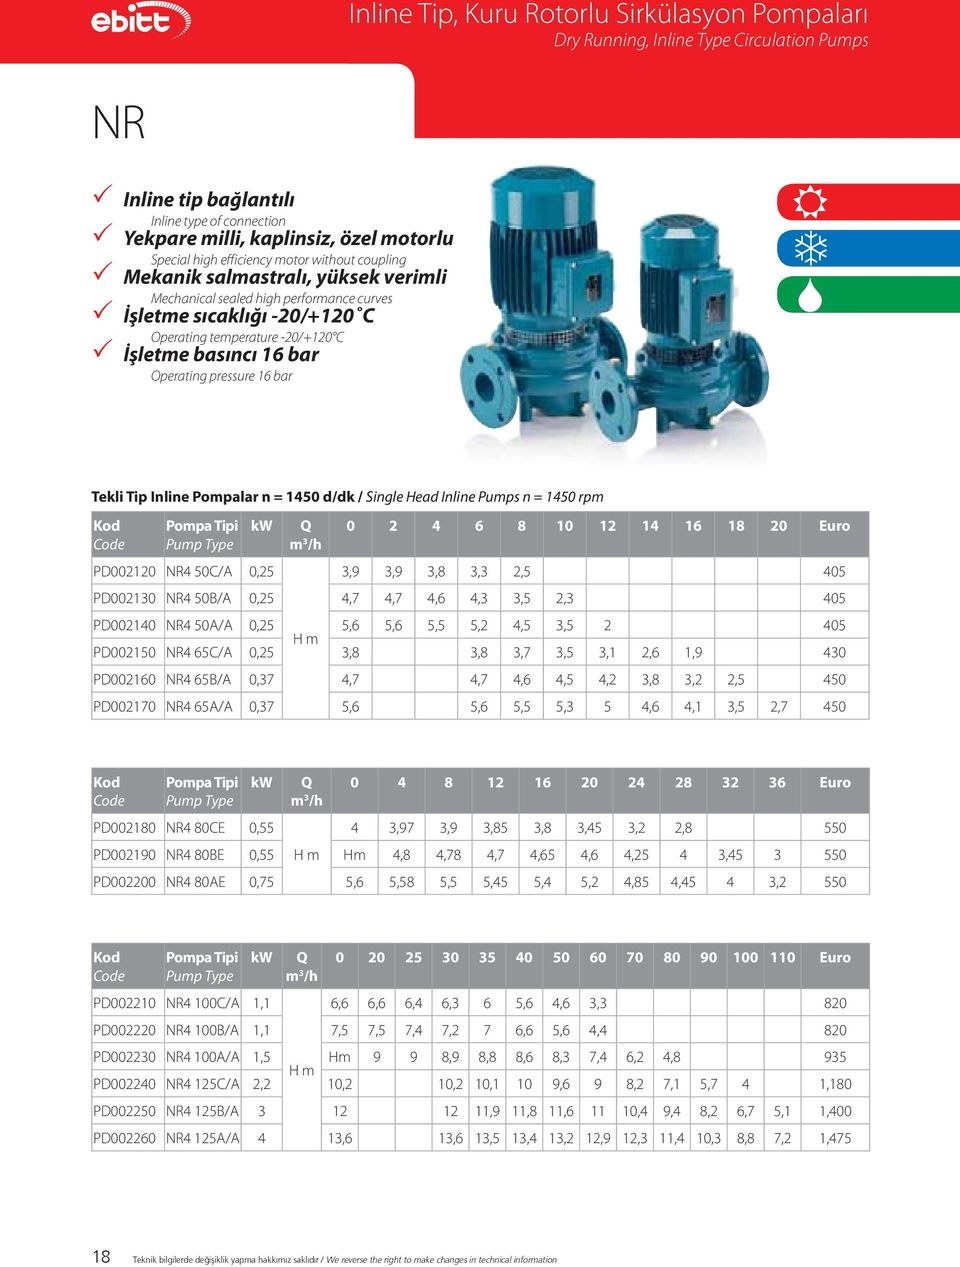 bar Operating pressure 16 bar Tekli Tip Inline Pompalar n = 1450 d/dk / Single Head Inline Pumps n = 1450 rpm Kod Code Pompa Tipi Pump Type kw PD002120 NR4 50C/A 0,25 Q m 3 /h 0 2 4 6 8 10 12 14 16